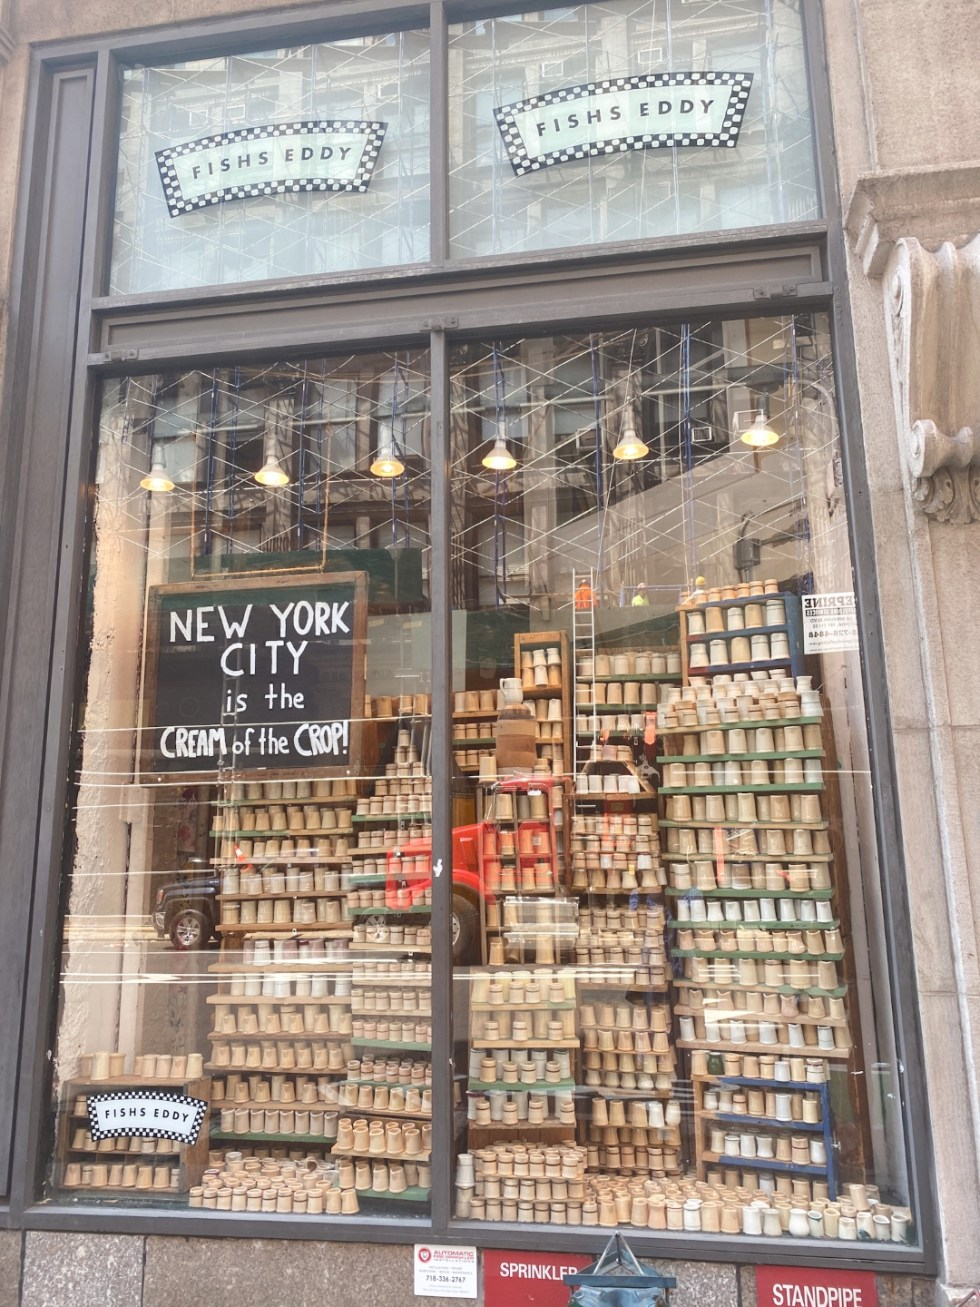 NYC Summer Weekend: Things to Do in NYC in the Summer - I'm Fixin' To - @imfixintoblog   NYC Summer Weekend by popular NC travel blog, I'm Fixin' To: image of ceramic creamers.